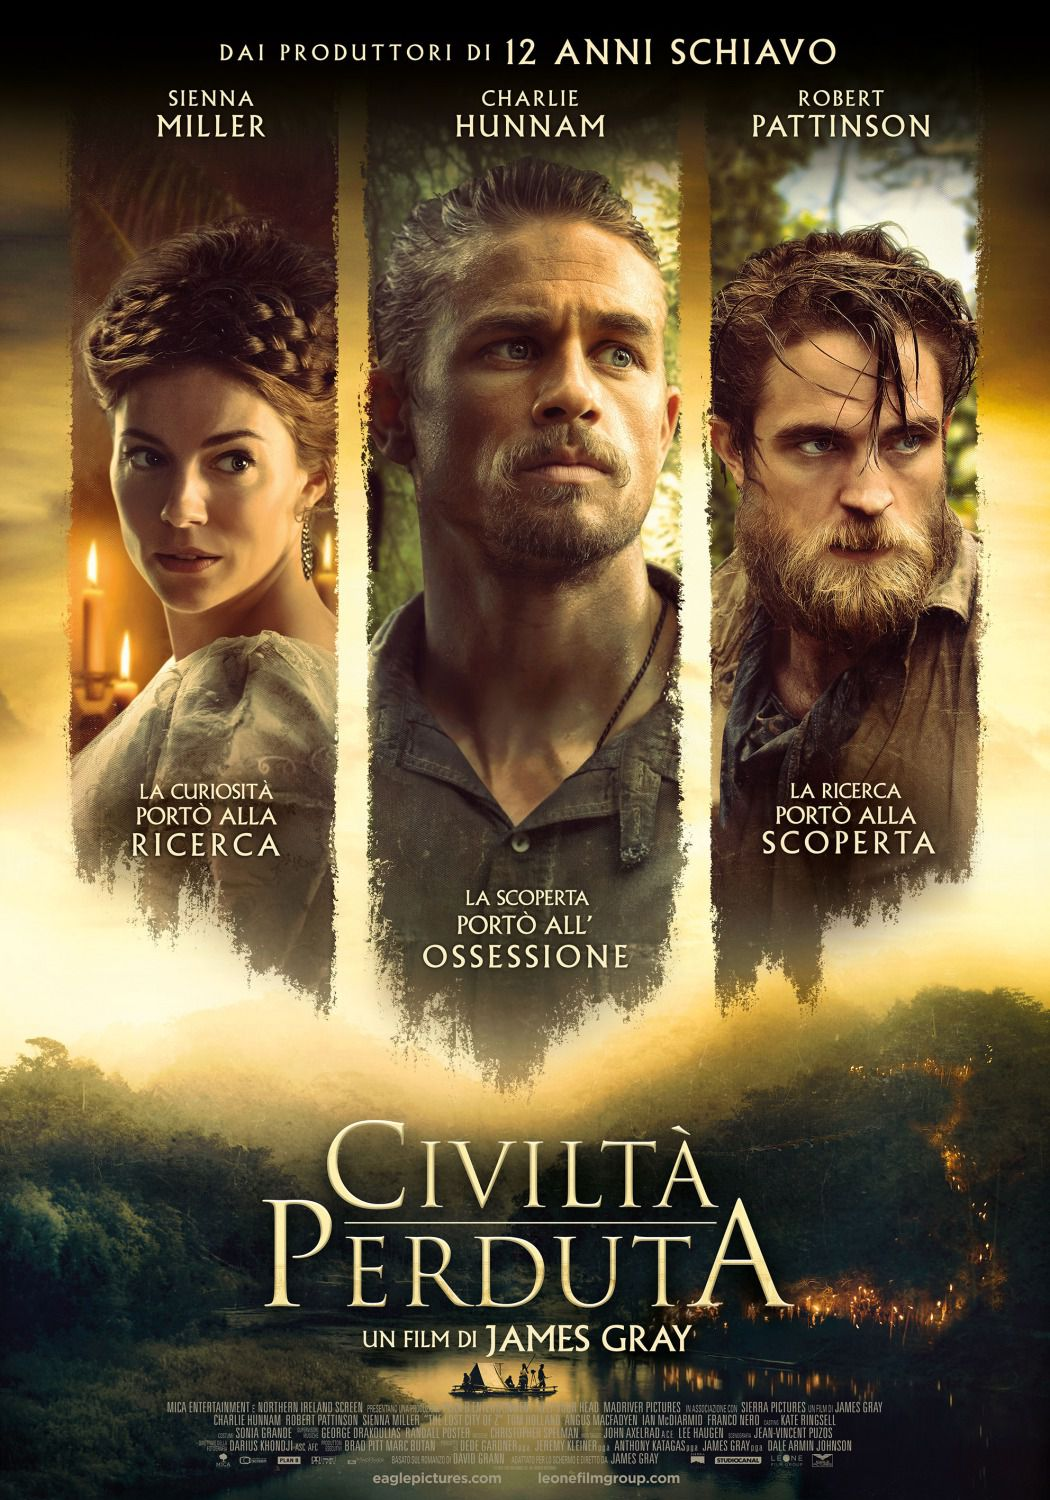 Lost City of Z - Civiltà Perduta - by James Gray - Charlie Hunnam, Robert Pattinson, Sienna Miller - film poster